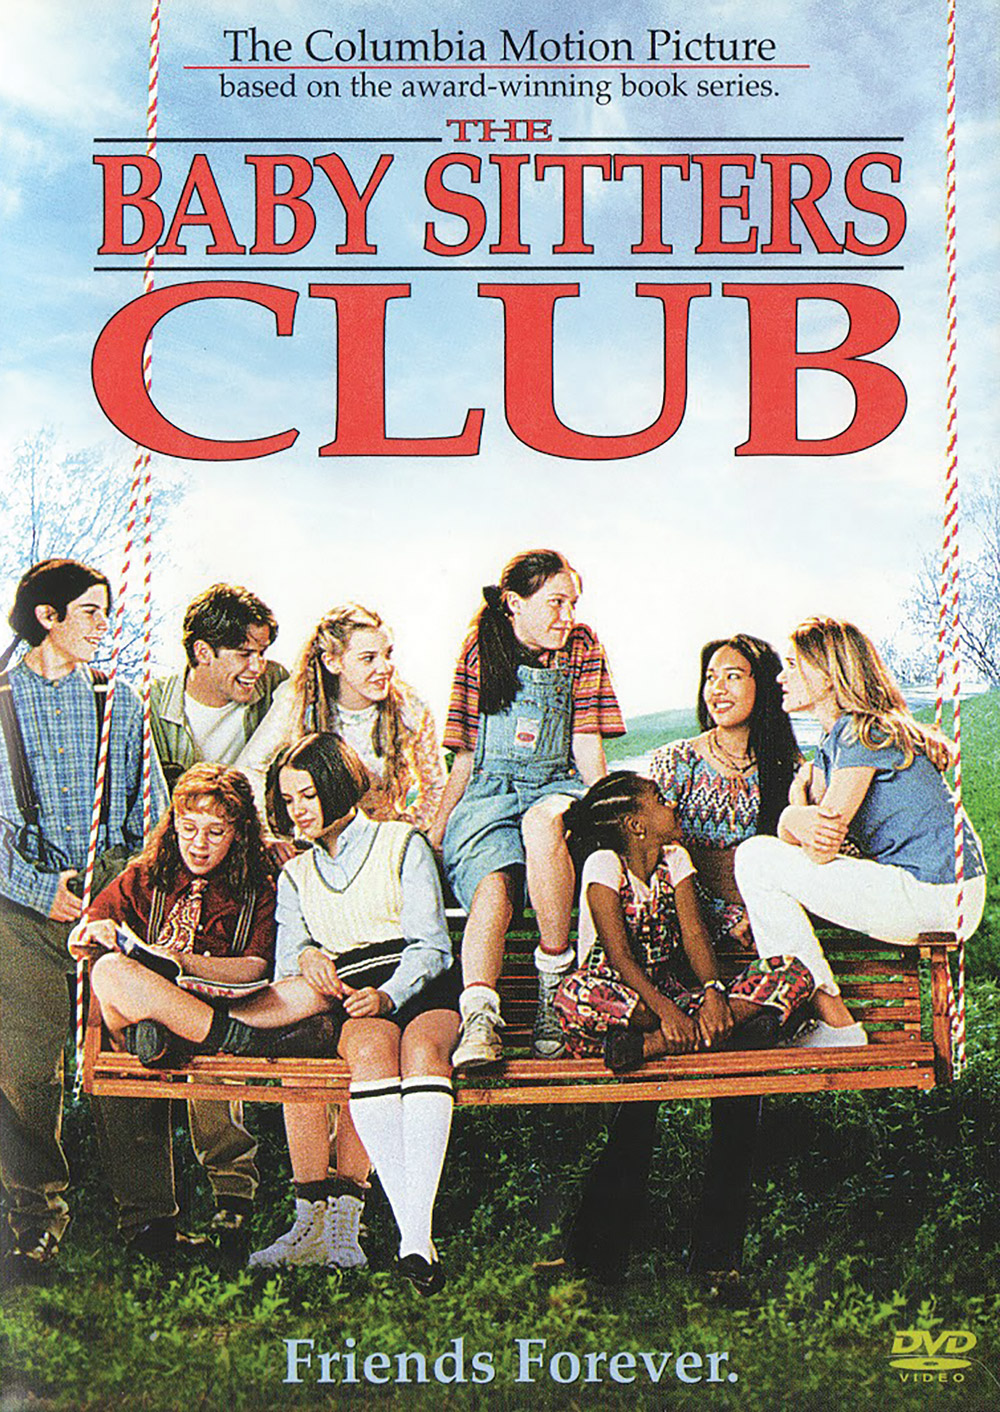 The cover of Baby Sitters Club on DVD